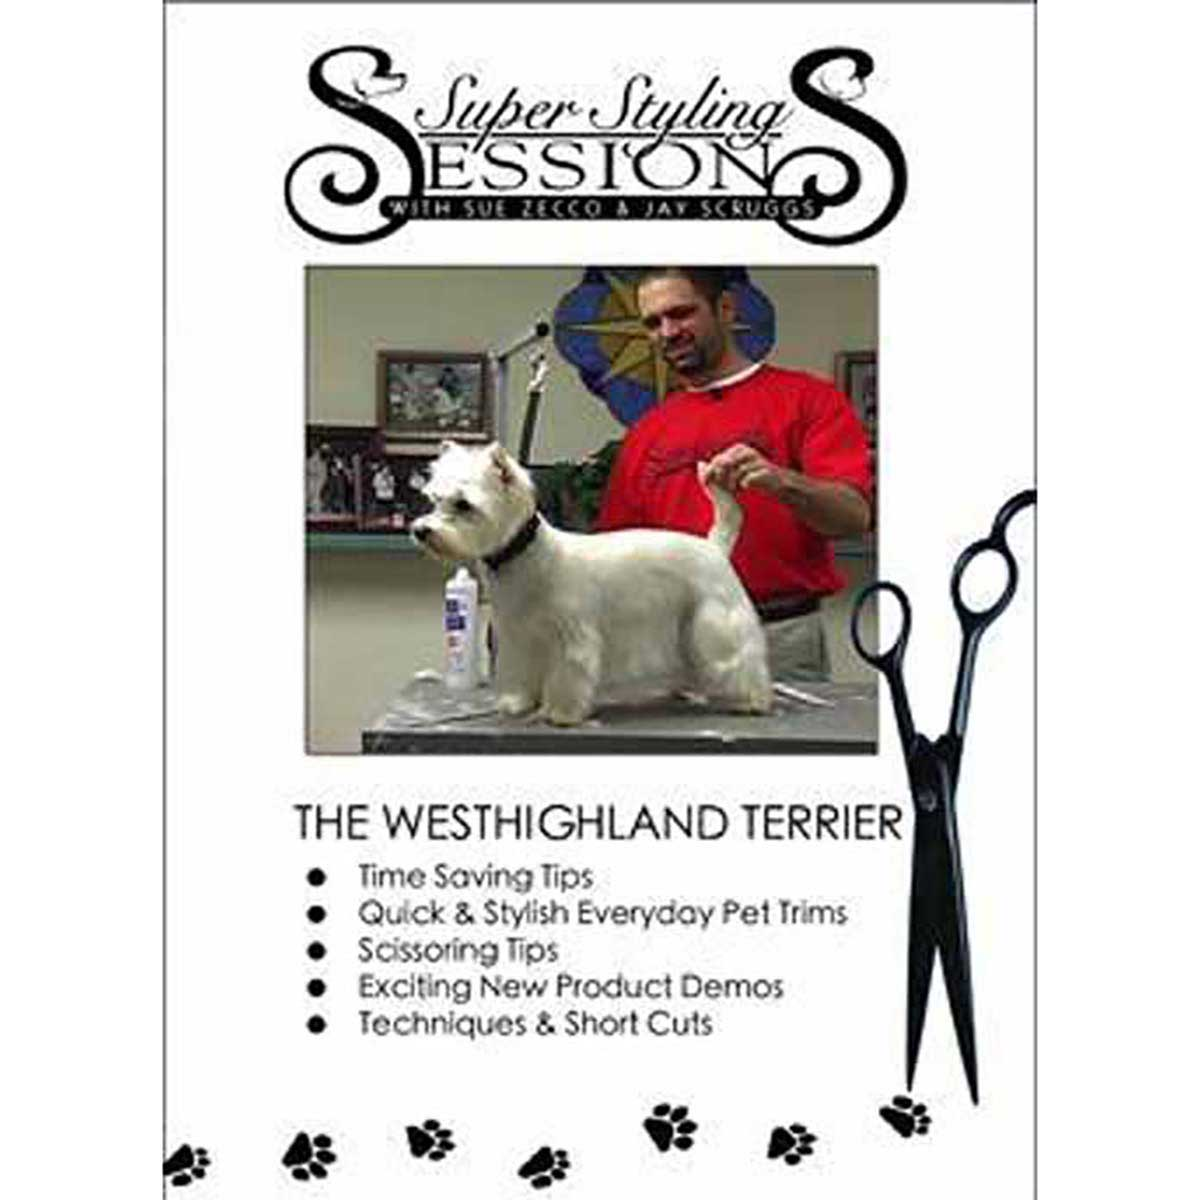 Super Styling Sessions - Westhigland Terrier Grooming DVD